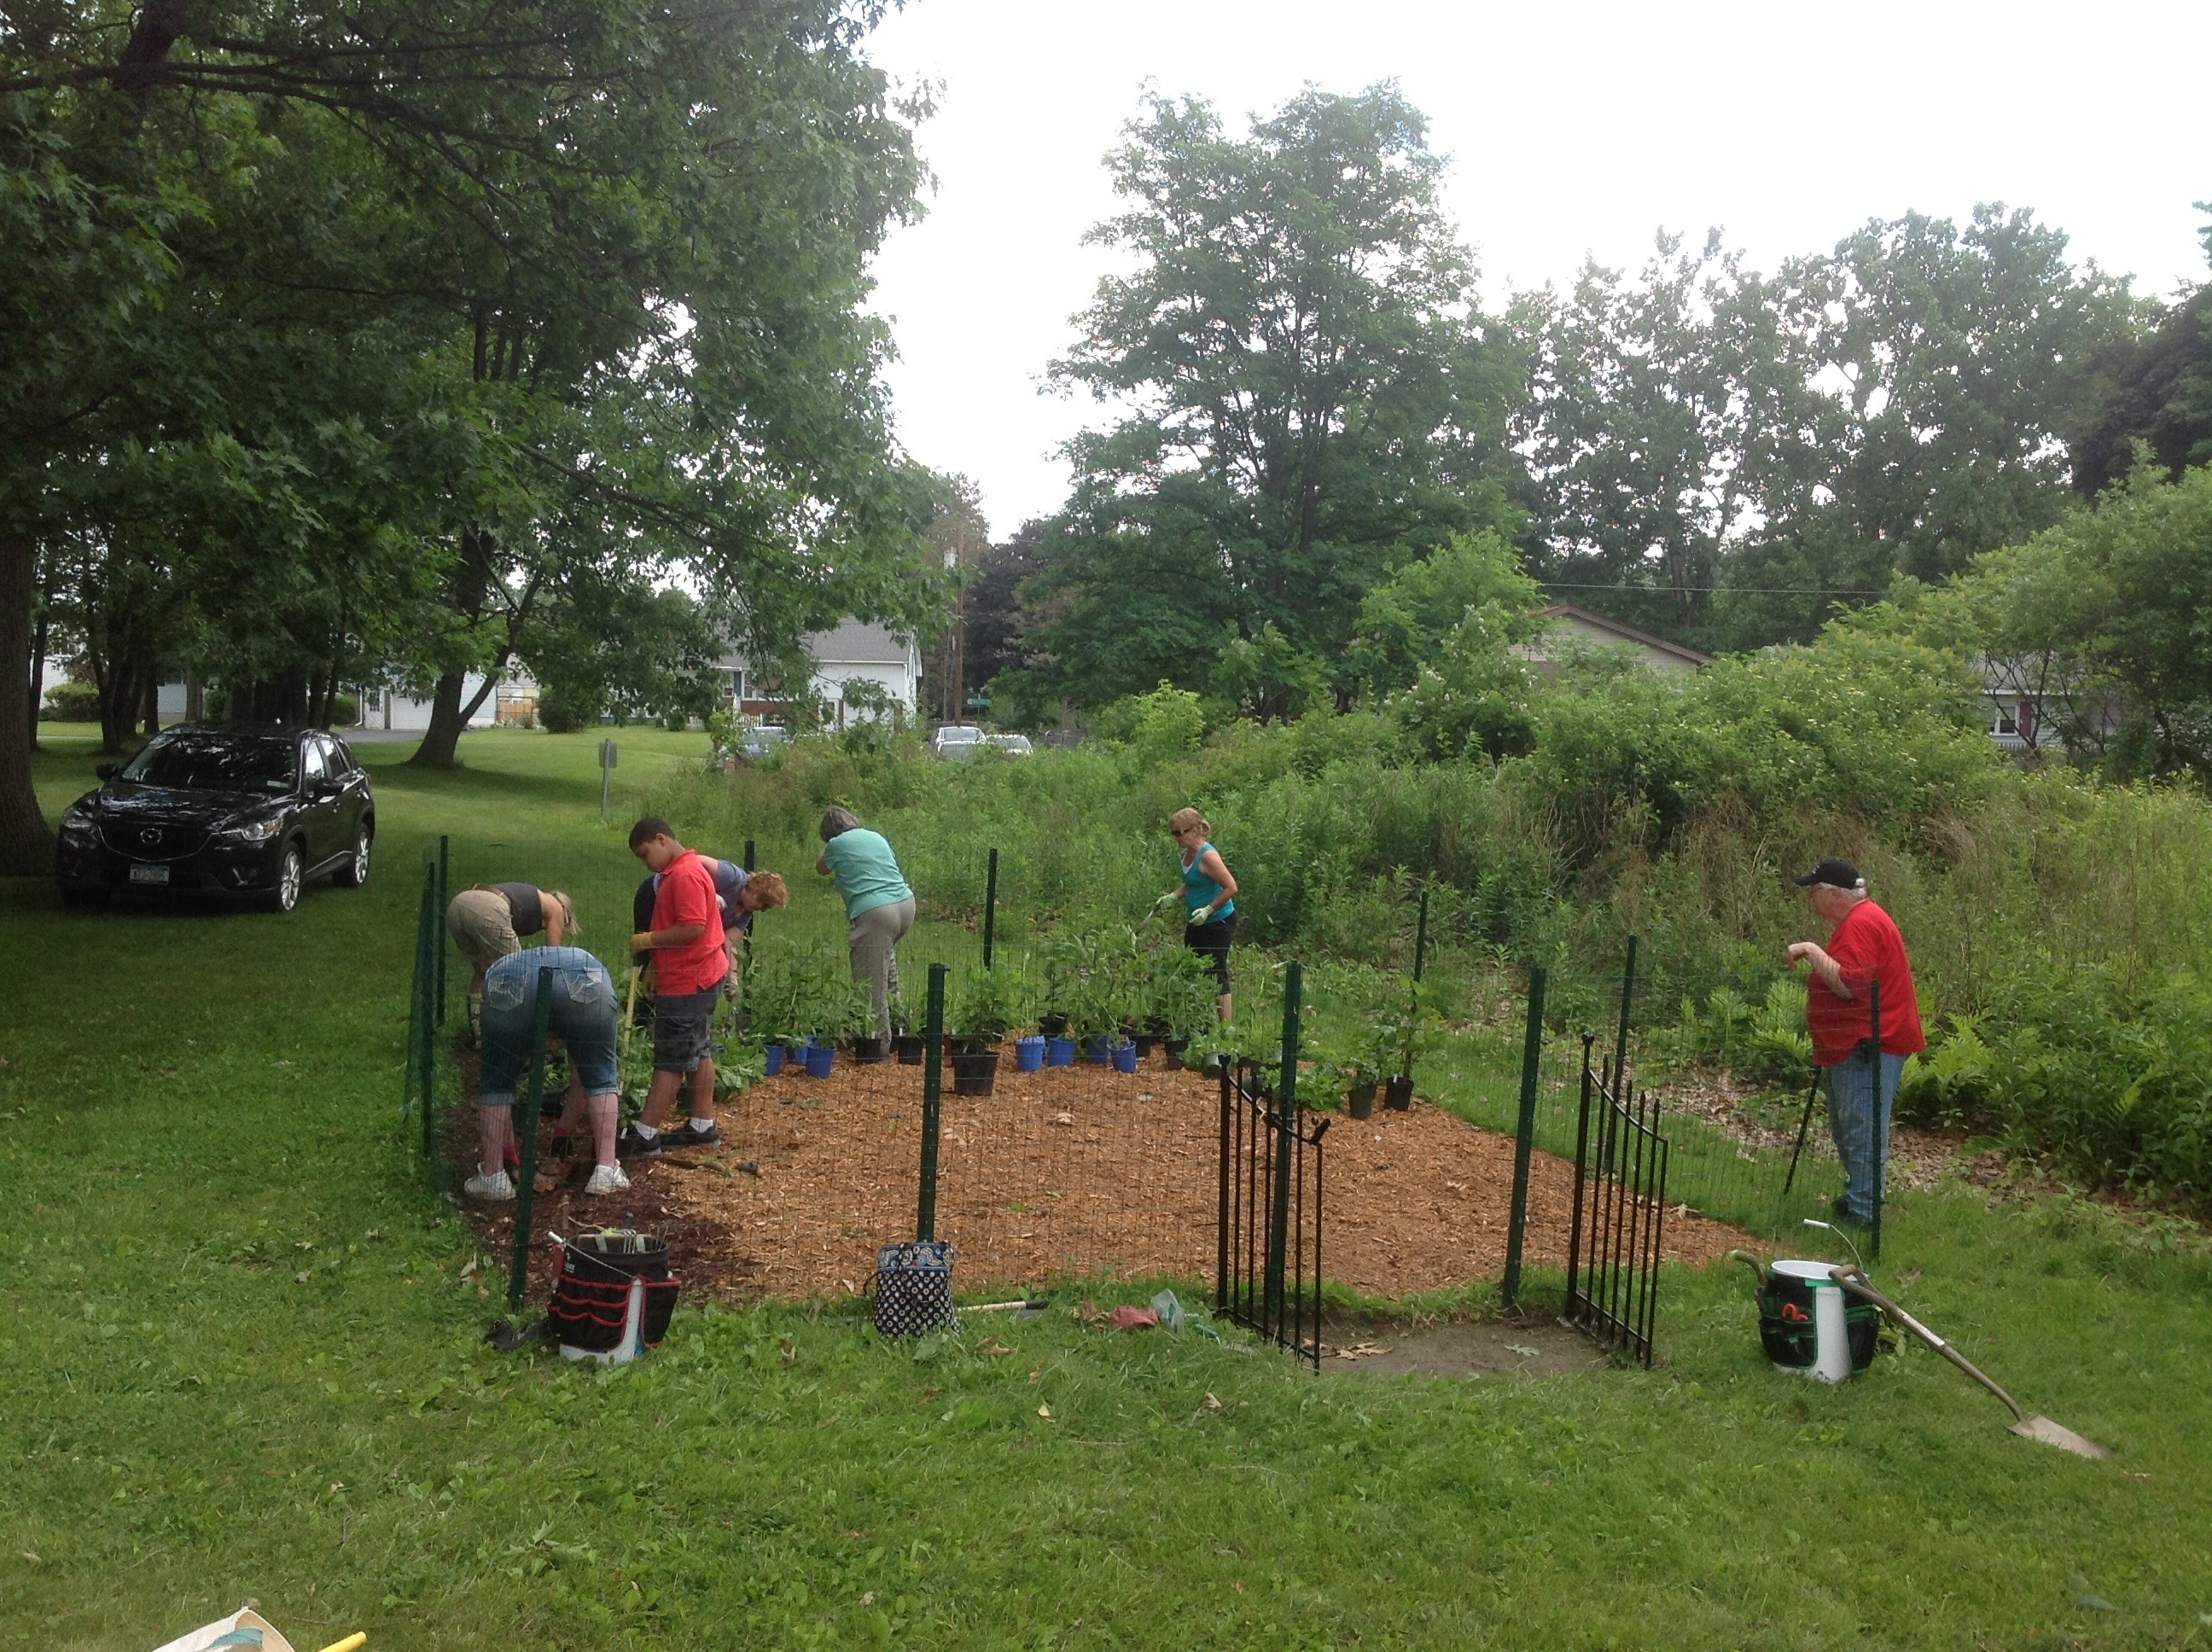 Butterfly Gardening With the Friends of the Woodlawn Preserve